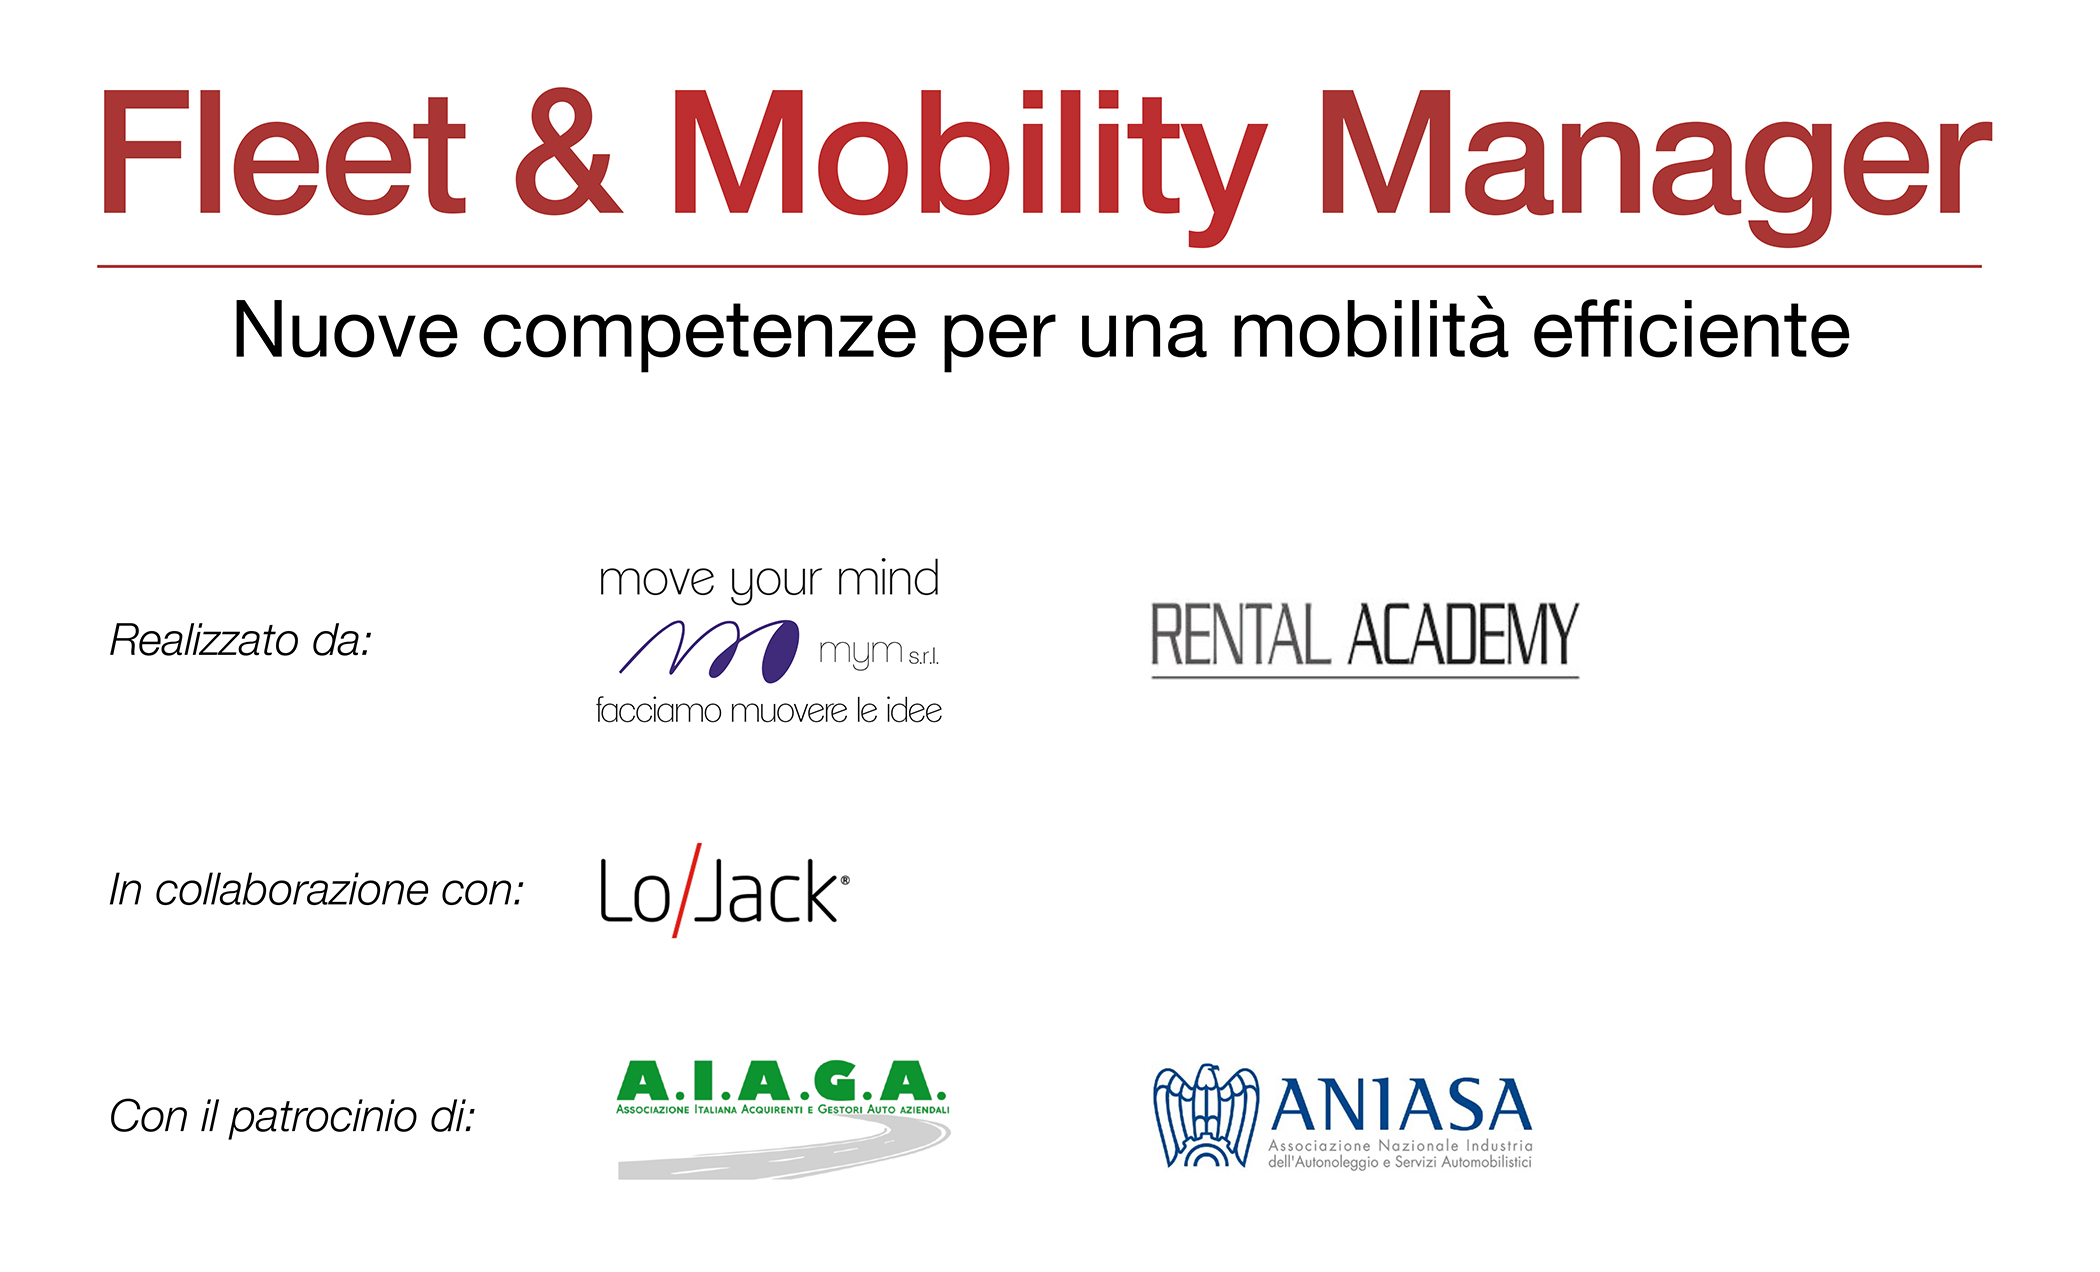 Fleet & Mobility Management - Aiaga